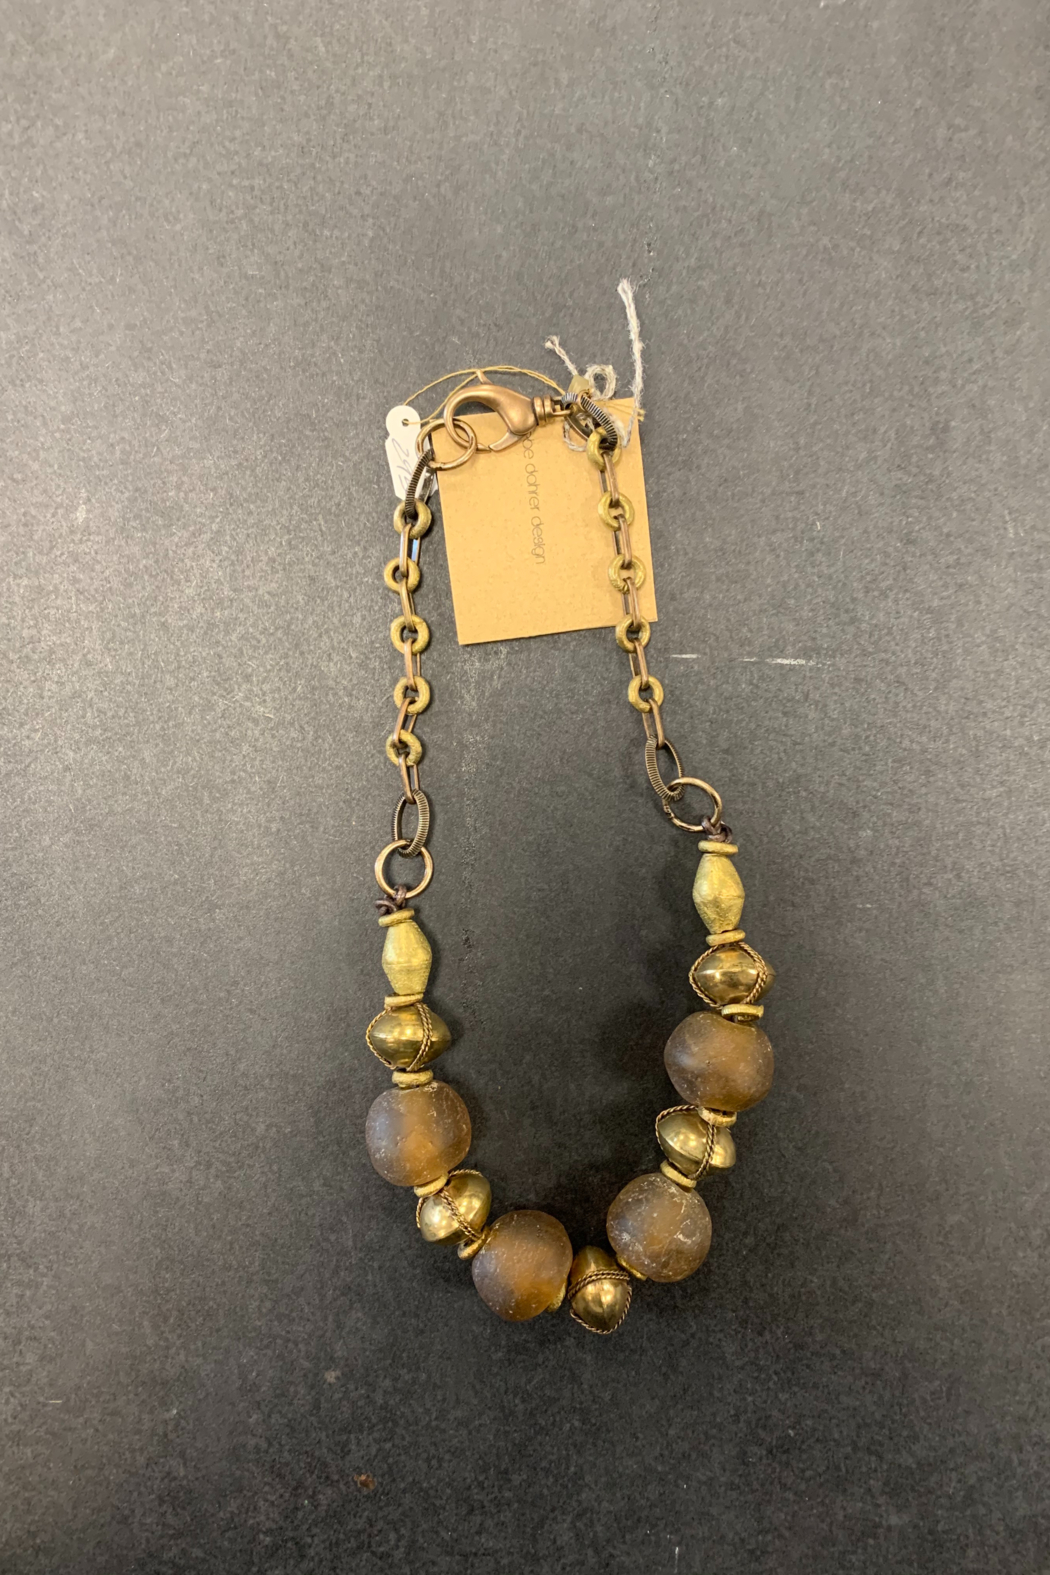 debe dohrer design Amber glass beads with African brass - Main Image